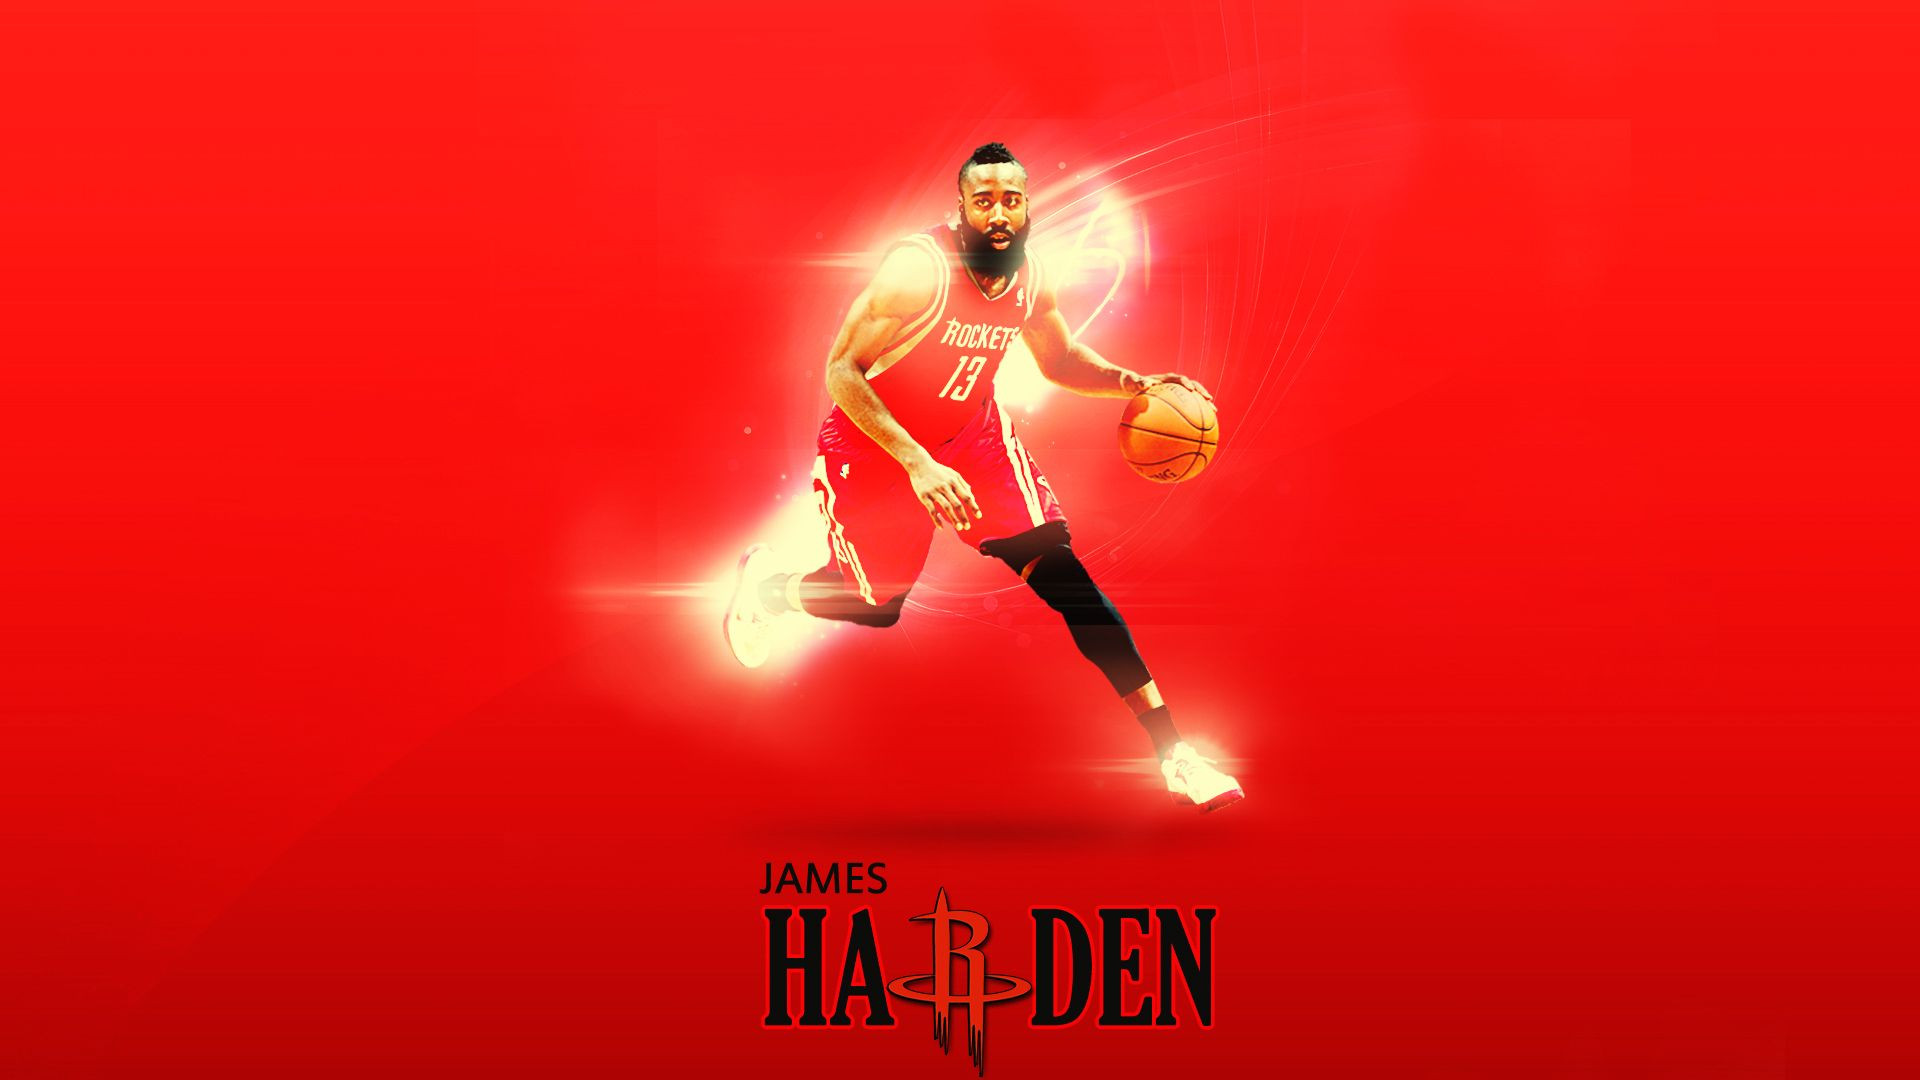 James Harden HD desktop wallpaper Widescreen High